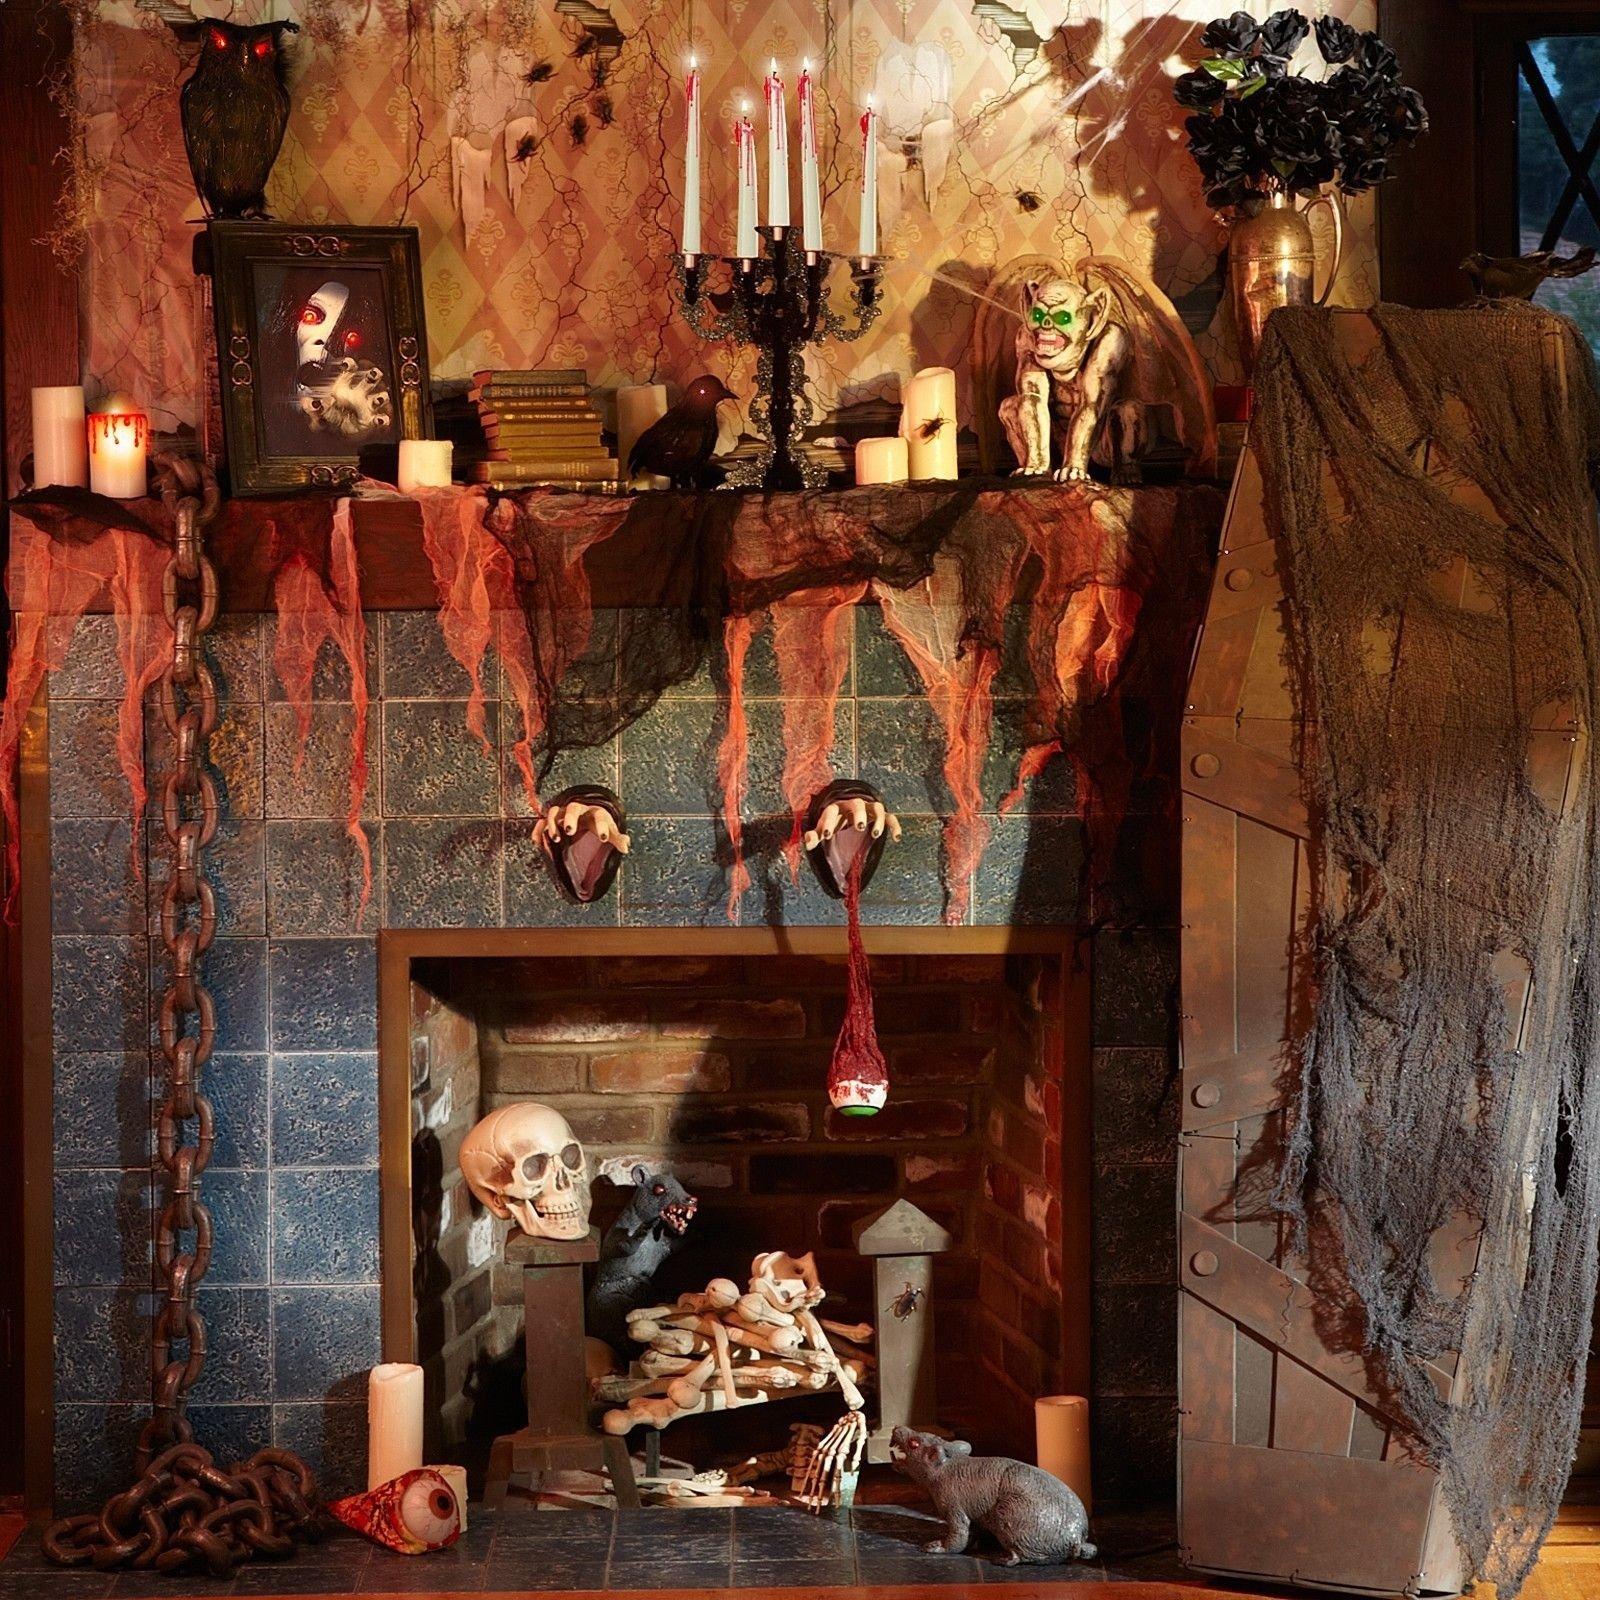 10 Stunning Halloween Haunted House Room Ideas halloween ideas for house decorating 2020